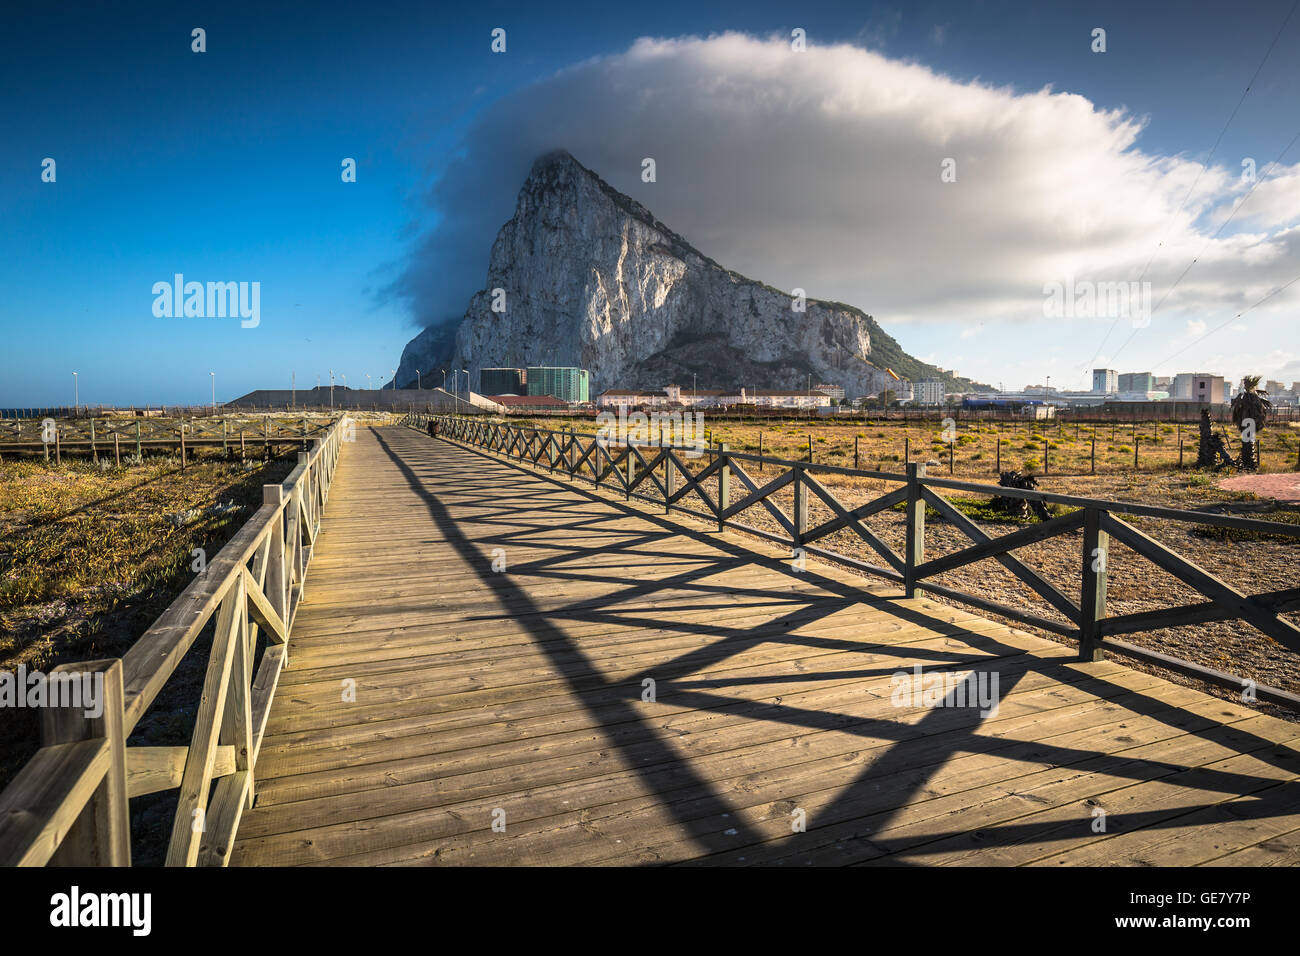 The Rock of Gibraltar from the beach of La Linea, Spain Stock Photo